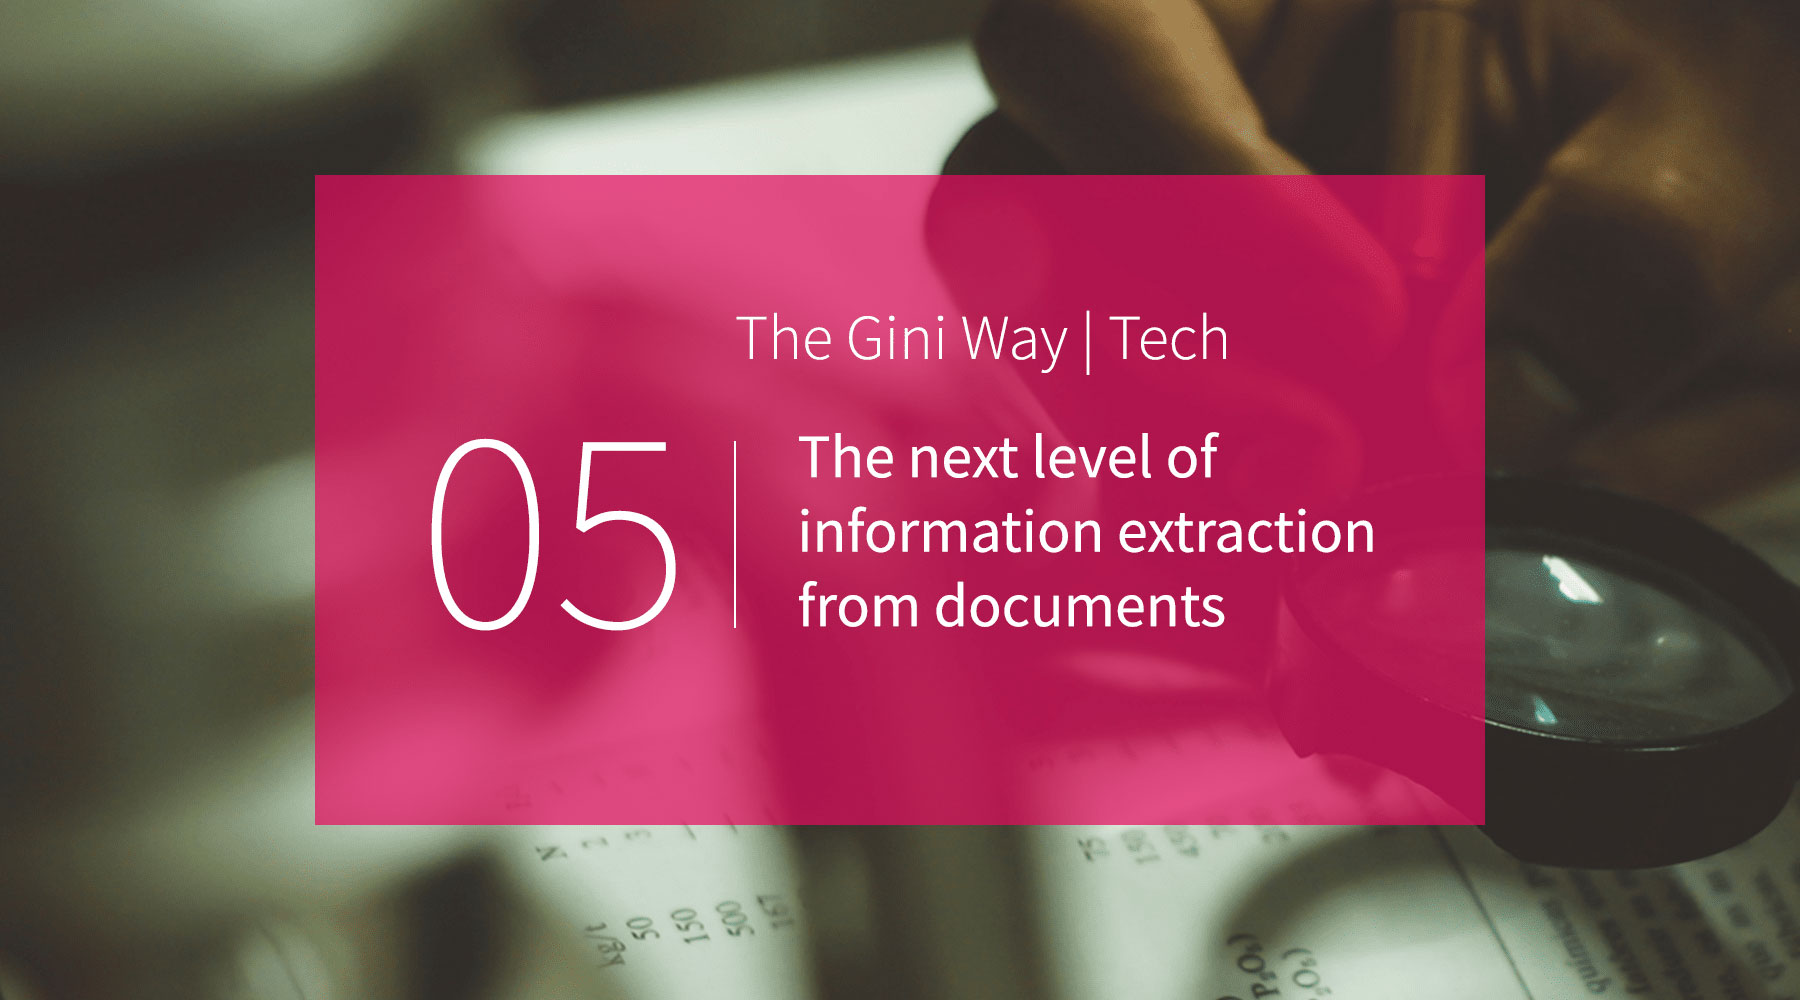 The next level of information extraction from documents